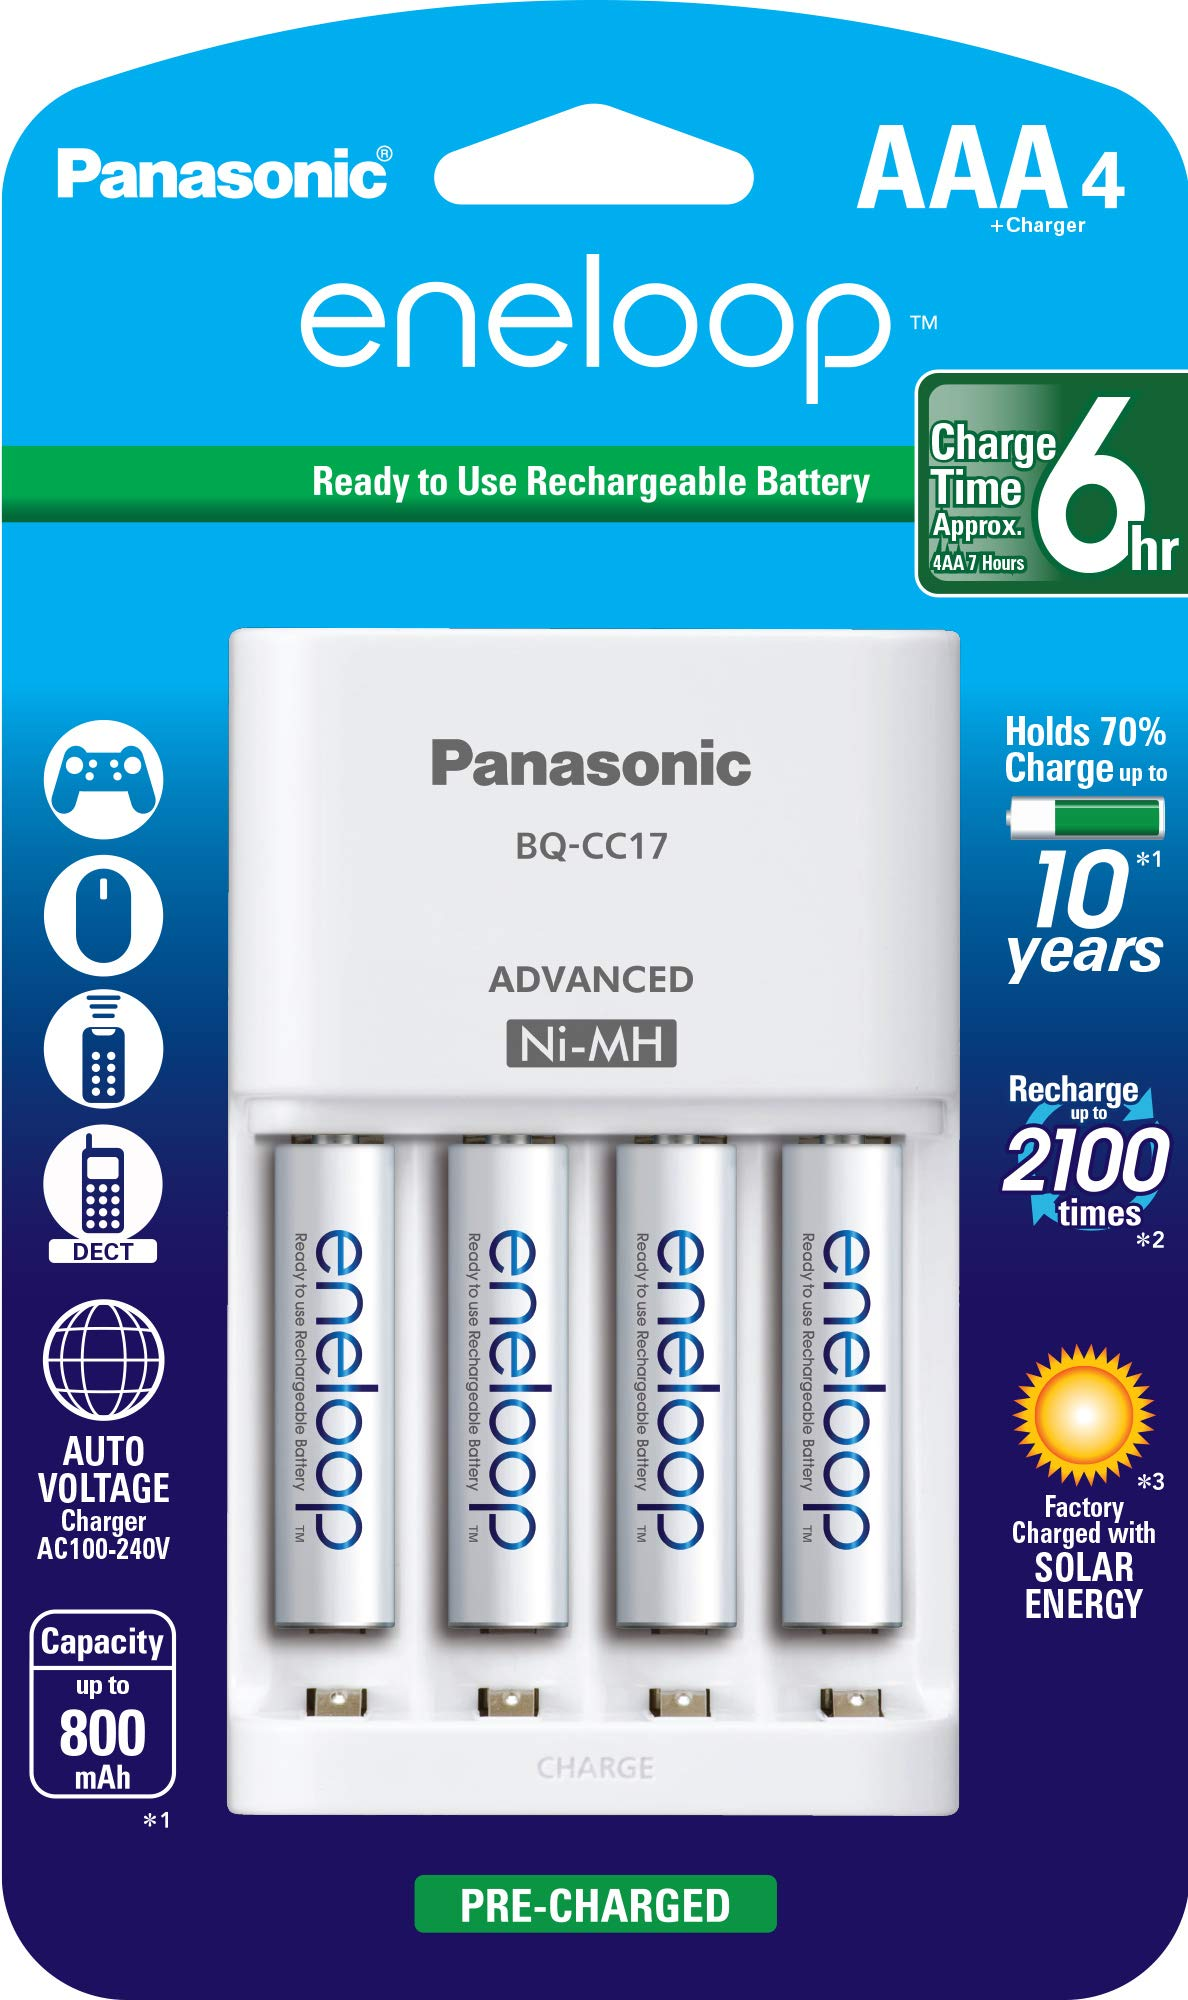 Panasonic K-KJ17M3A4BA Advanced Individual Cell Battery Charger Pack with 4 AAA eneloop 2100 Cycle Rechargeable Batteries